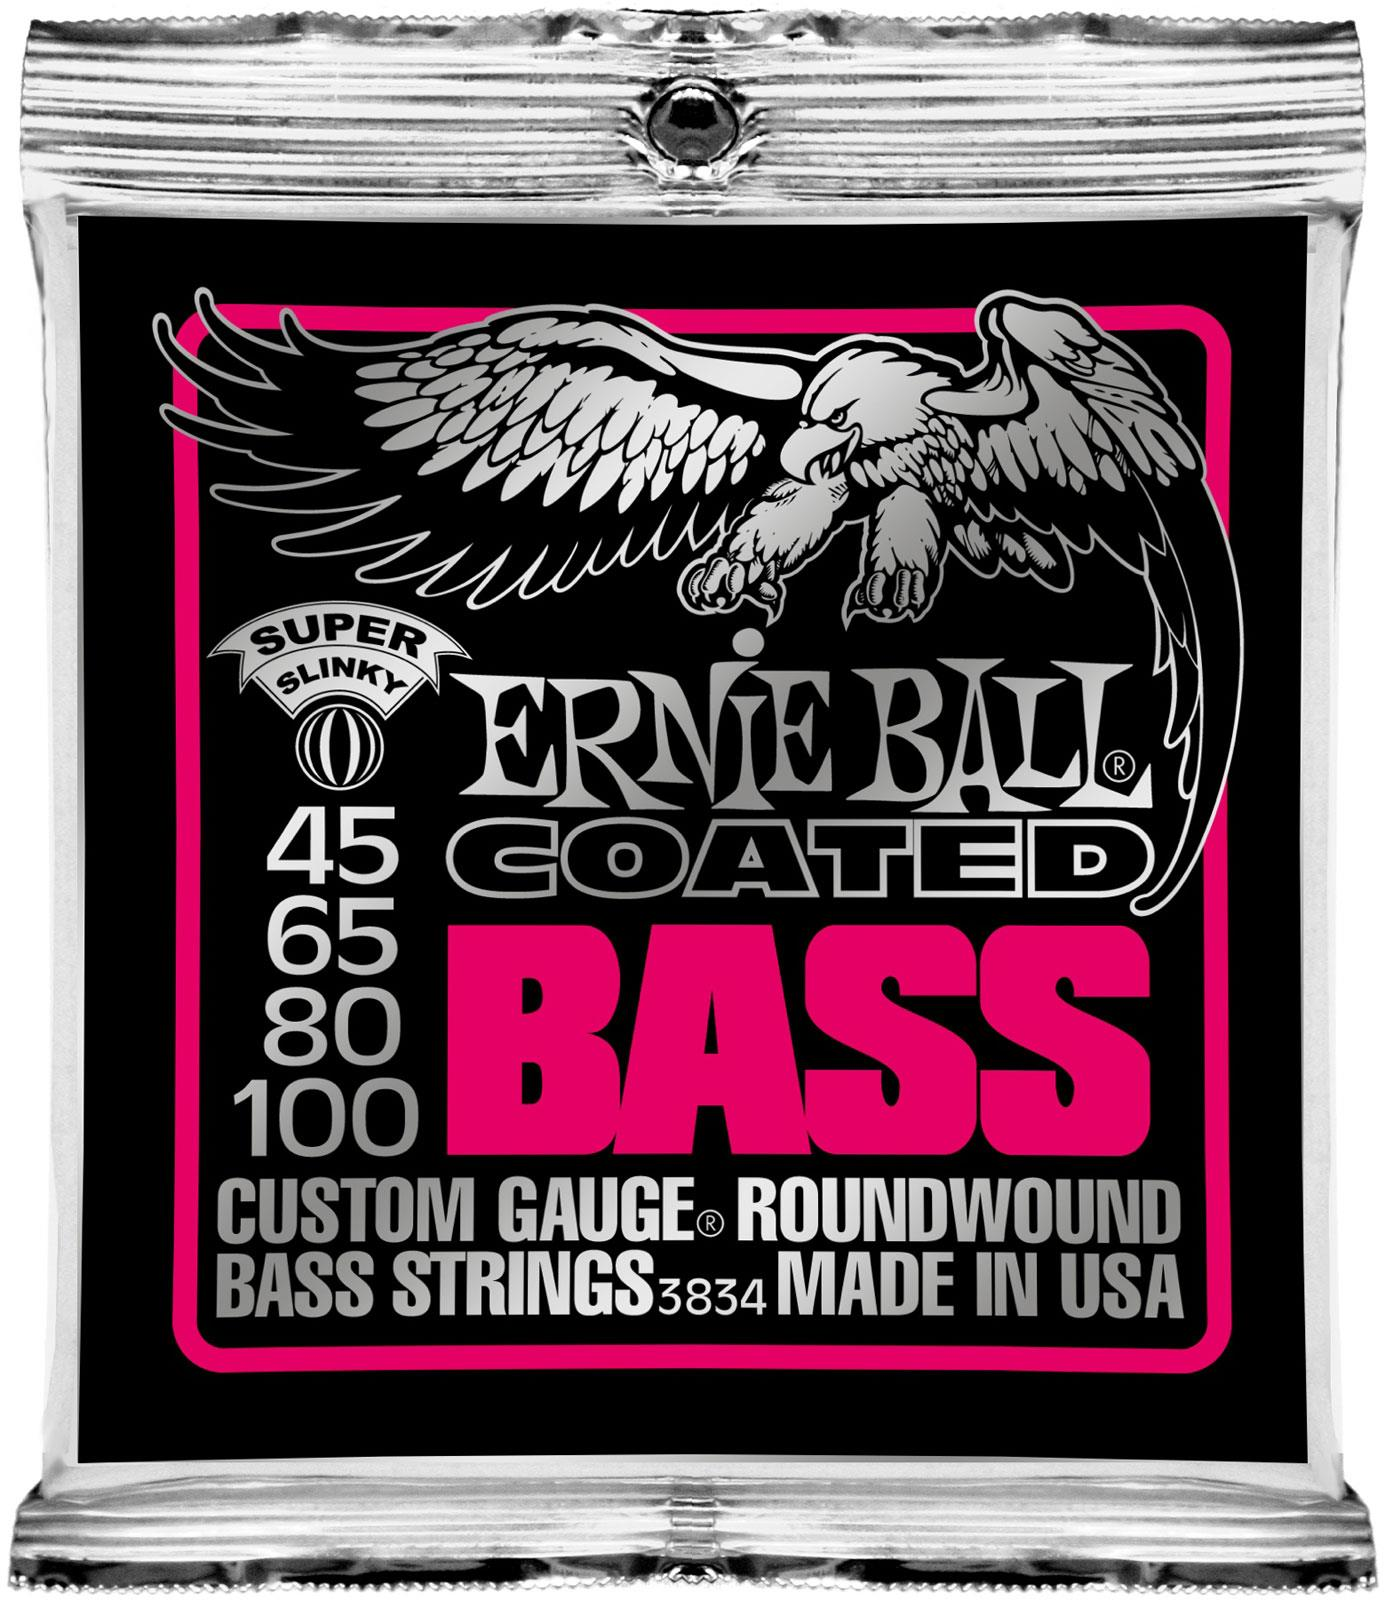 ernie ball 3834 coated bass super slinky keymusic. Black Bedroom Furniture Sets. Home Design Ideas